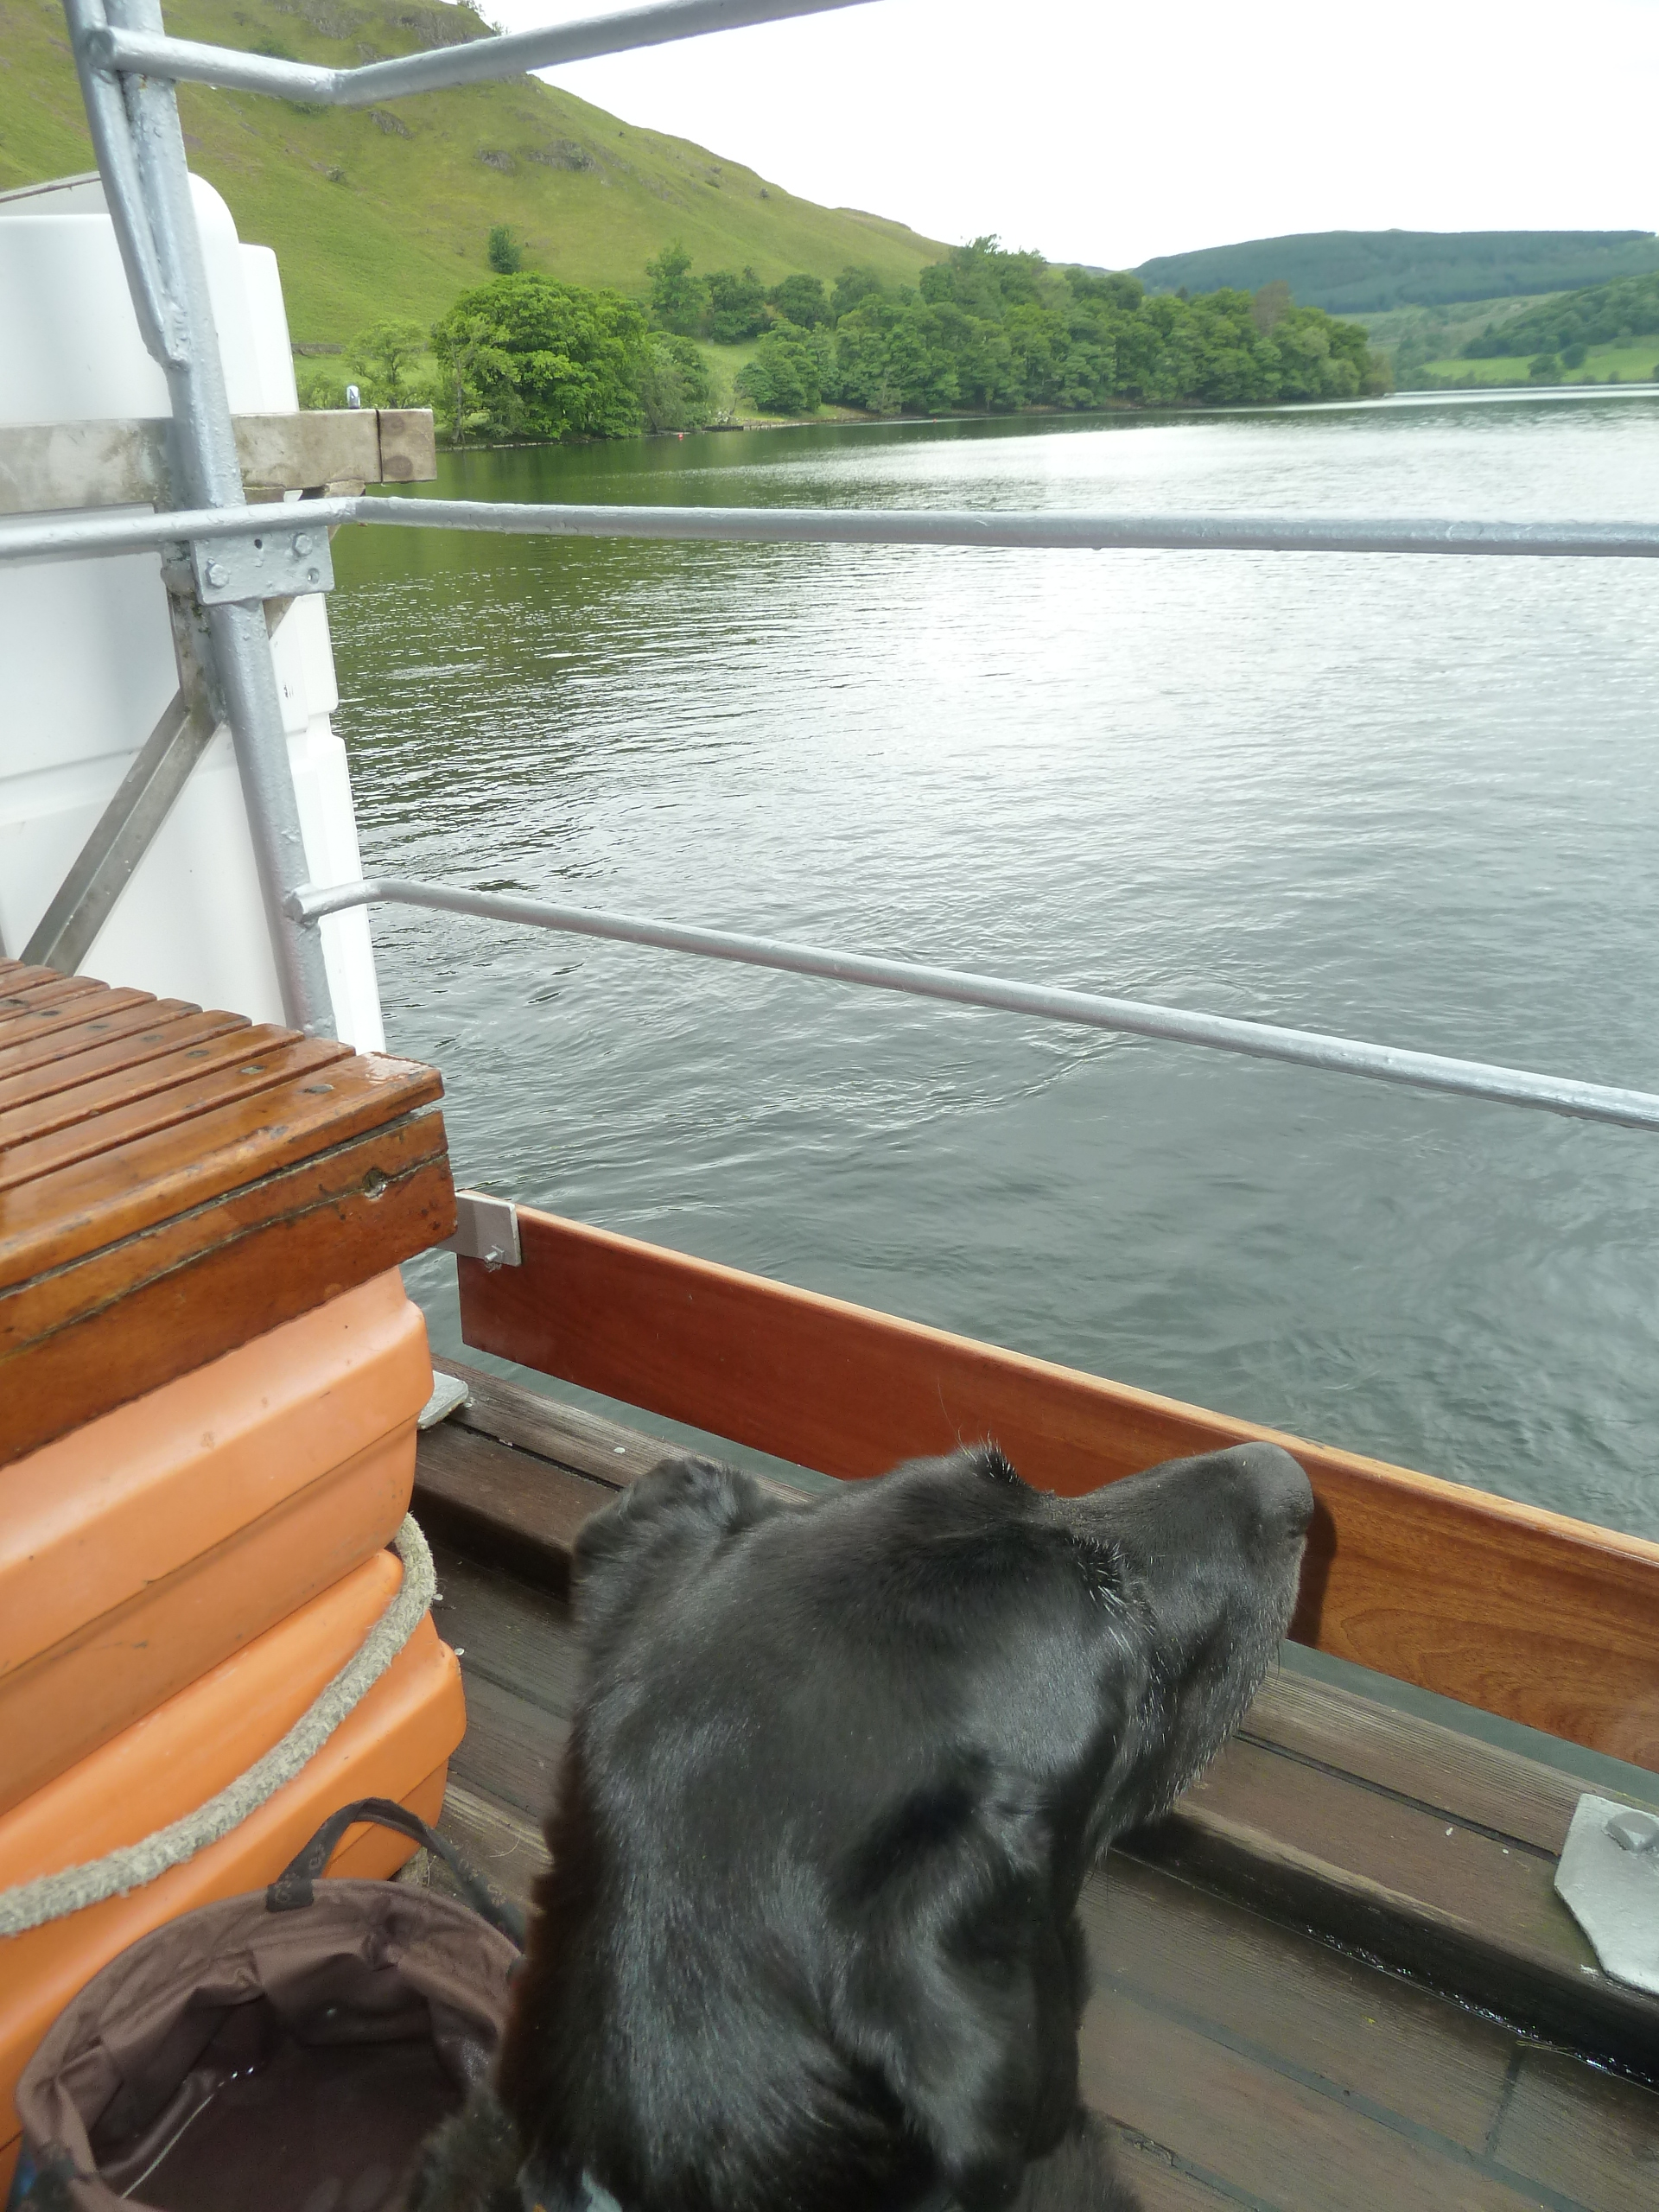 Jake's first boat trip age 13. Think he enjoyed it!